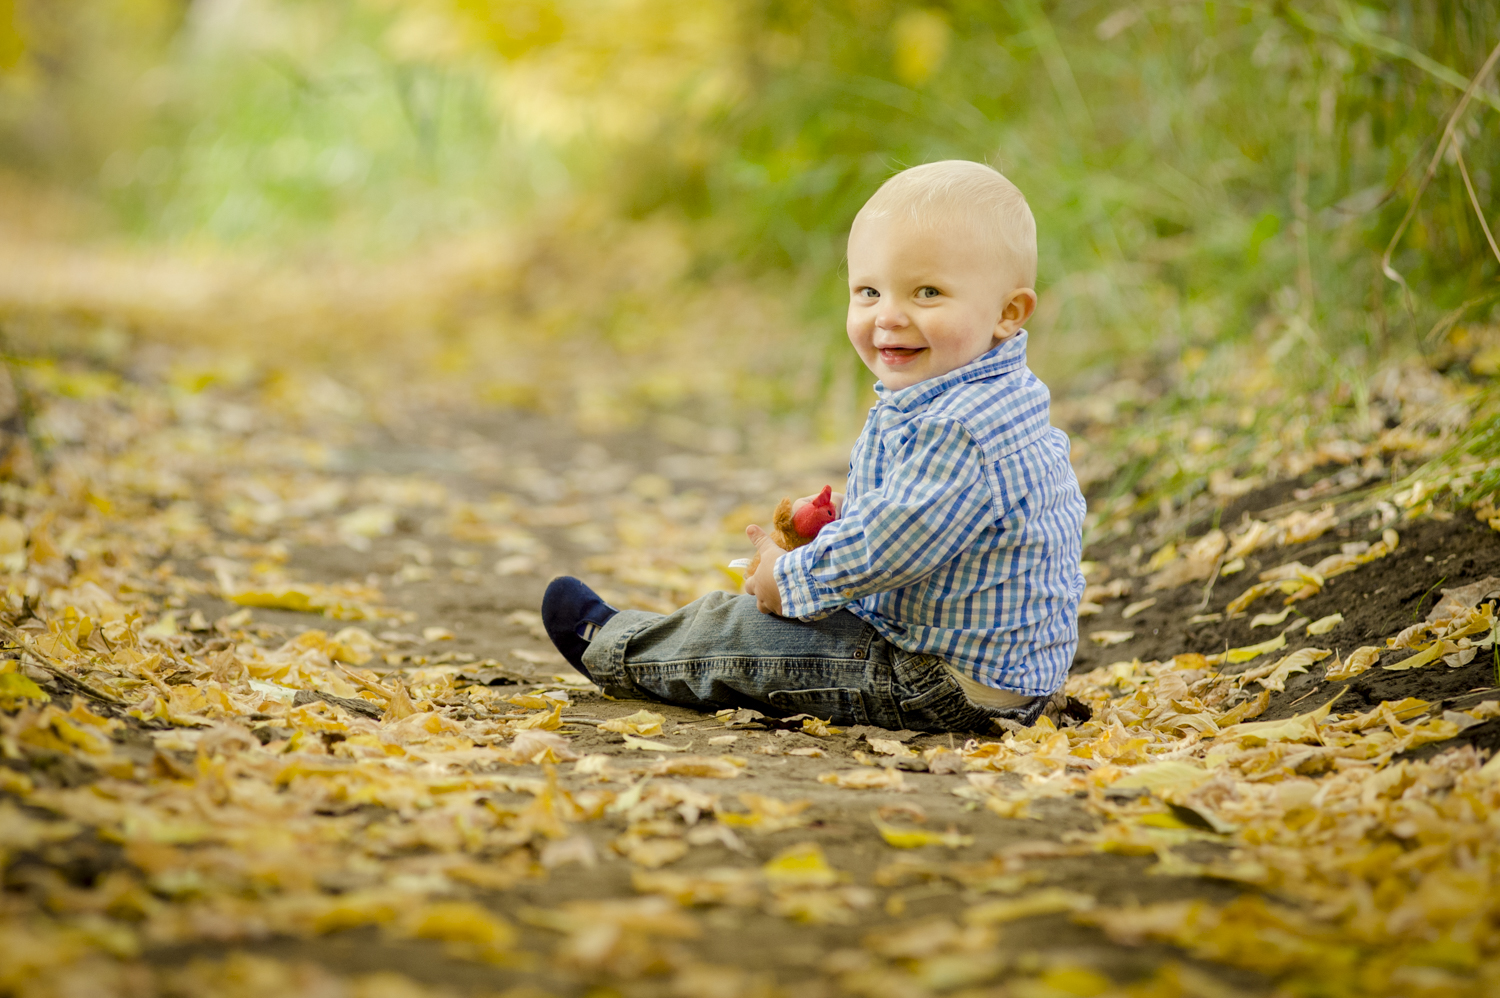 fall_lifestyle_family_leaves_candid_playing-013.jpg